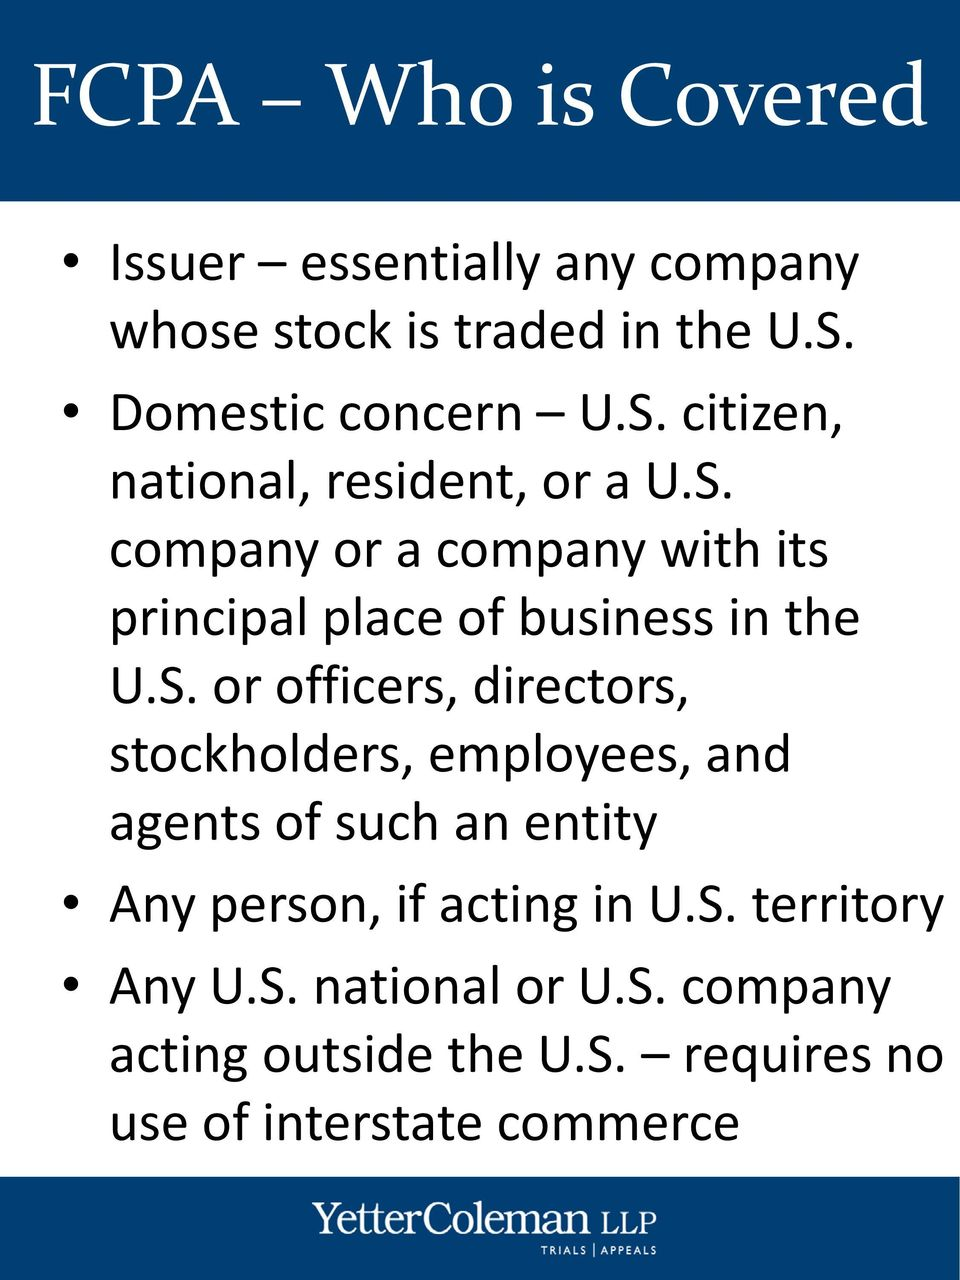 S. or officers, directors, stockholders, employees, and agents of such an entity Any person, if acting in U.